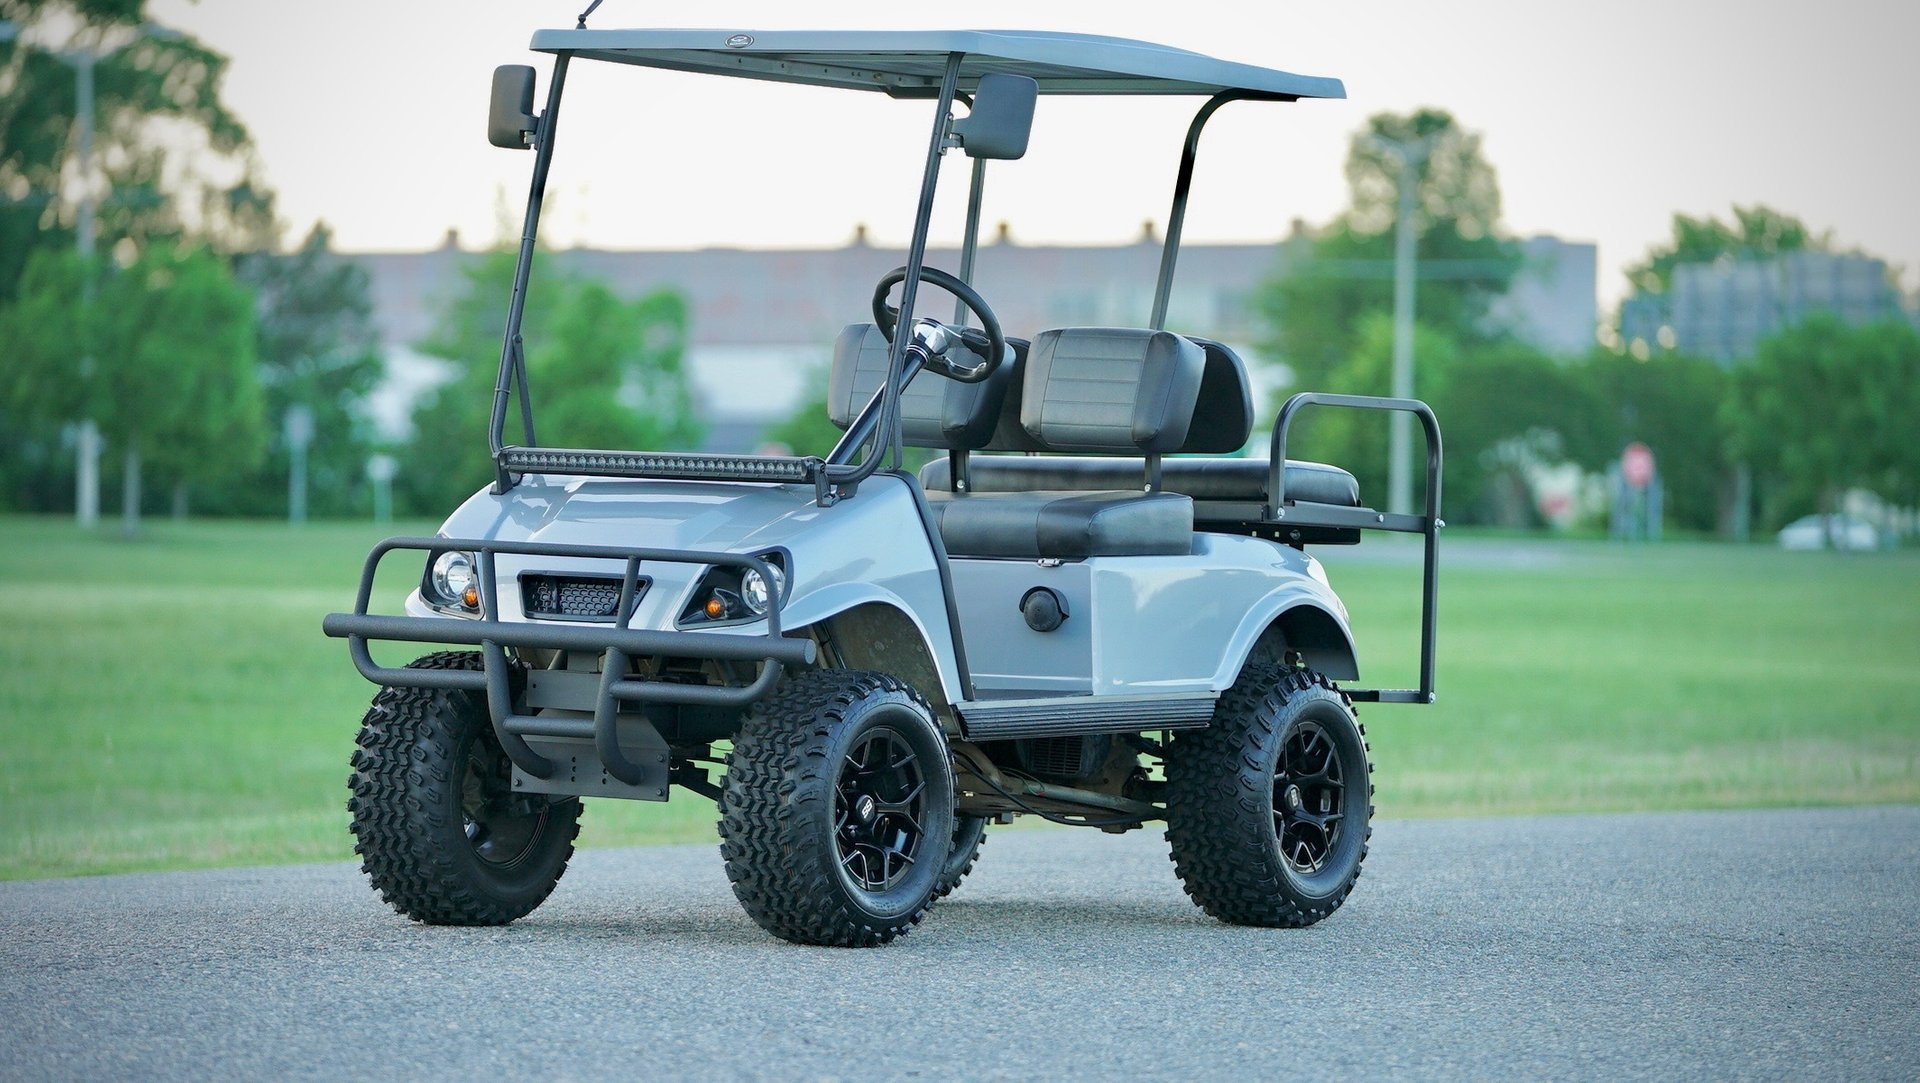 Club cart golf cart